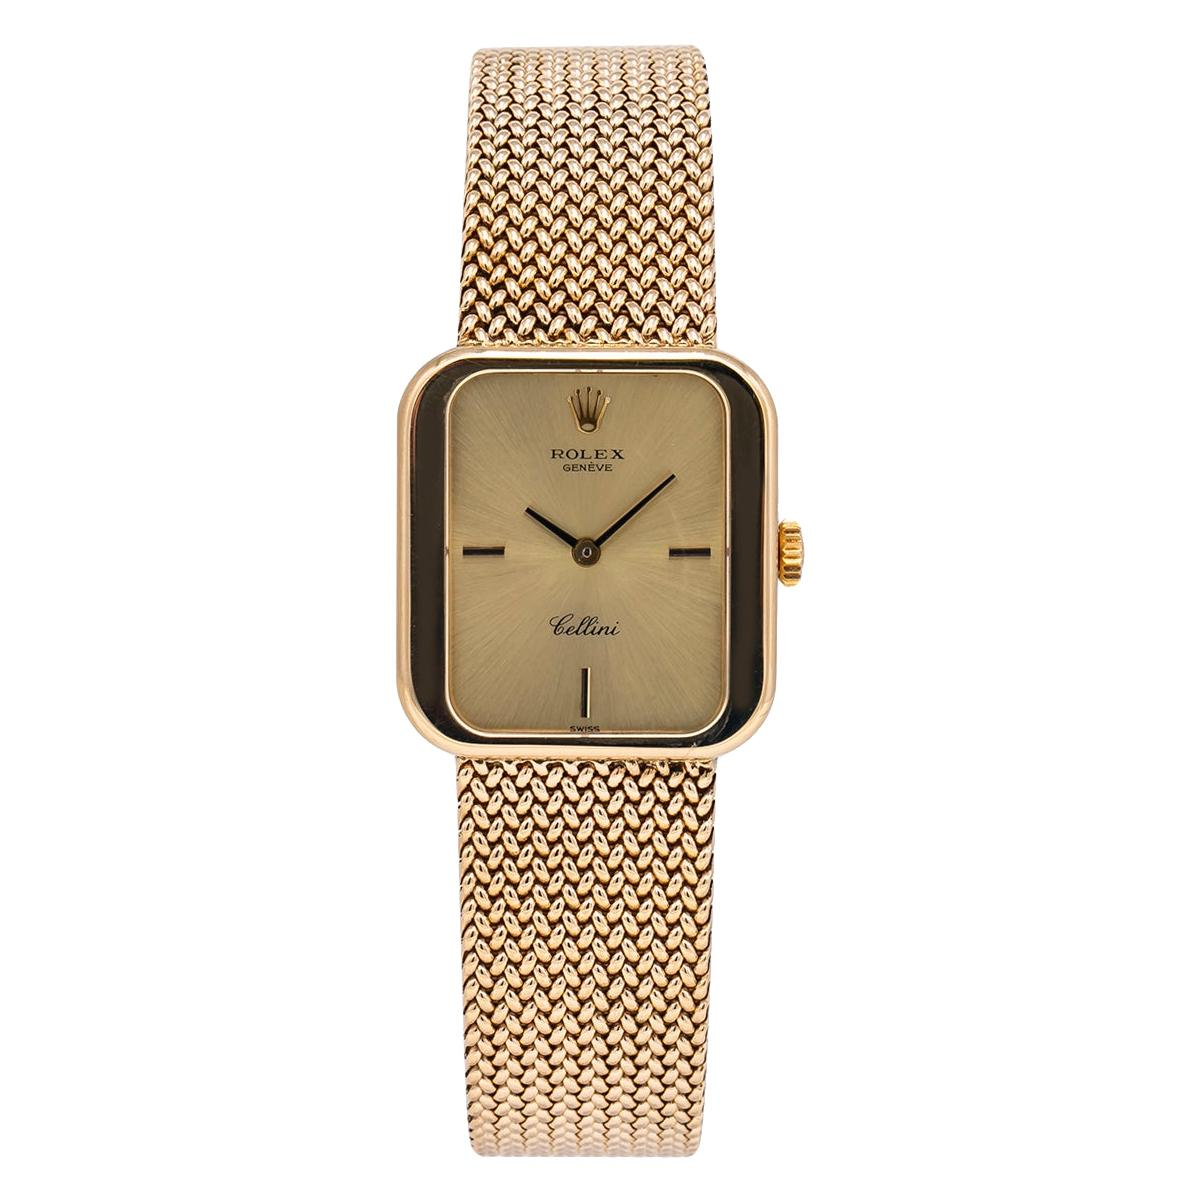 Rolex Cellini Geneve 4335 Vintage 18K Gold Manual Wind Square Lady's Watch 1975